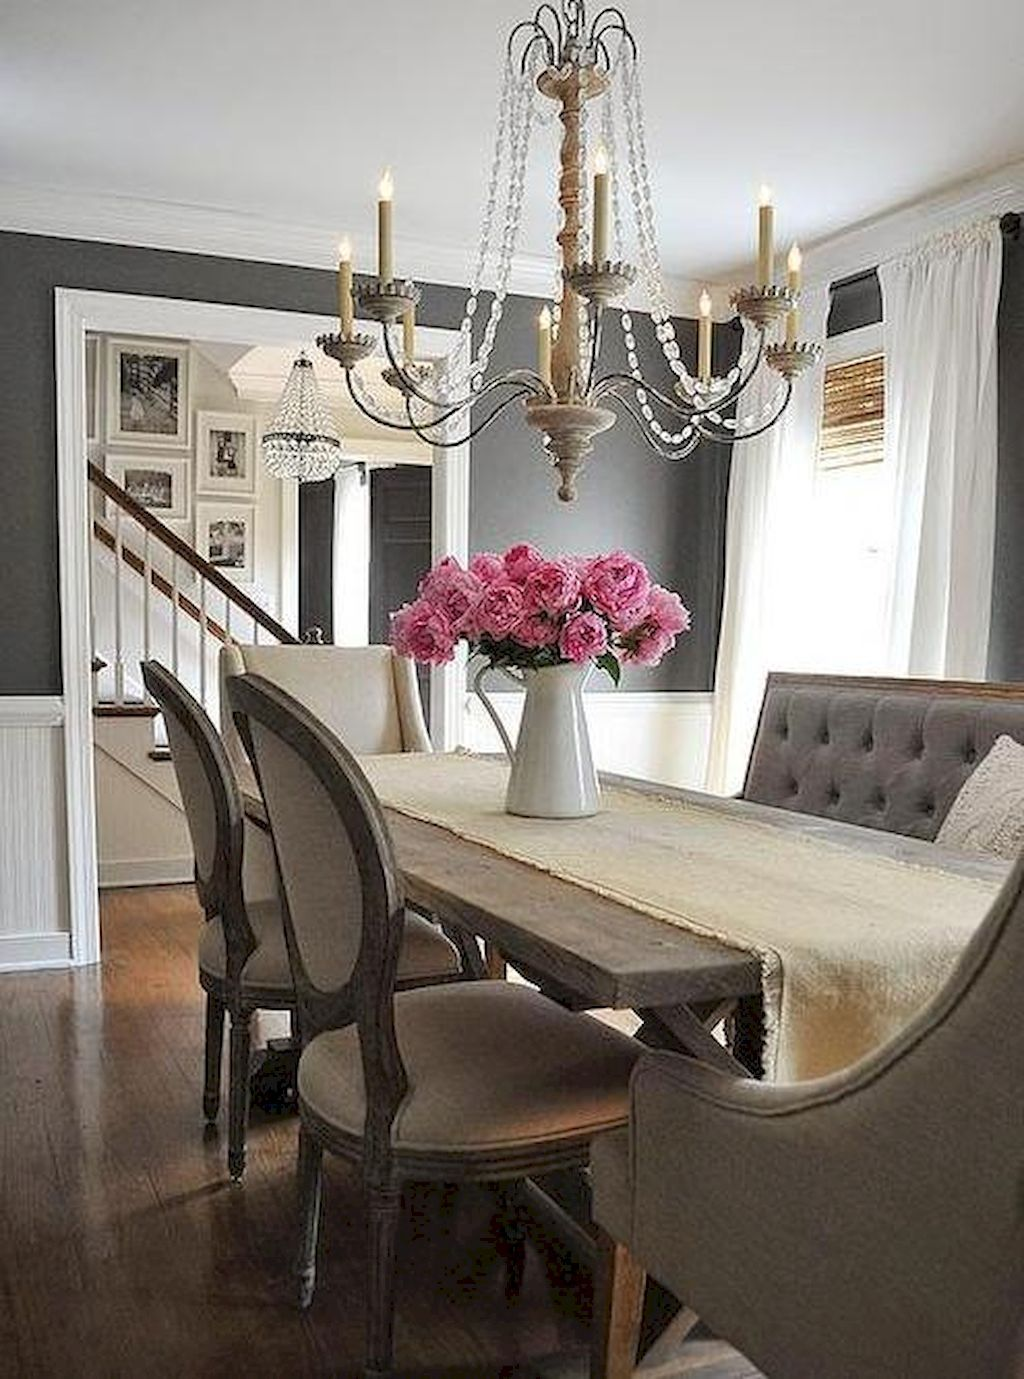 75 Fancy French Country Dining Room Decor Ideas  French Country Awesome French Country Dining Room Decorating Ideas Design Decoration